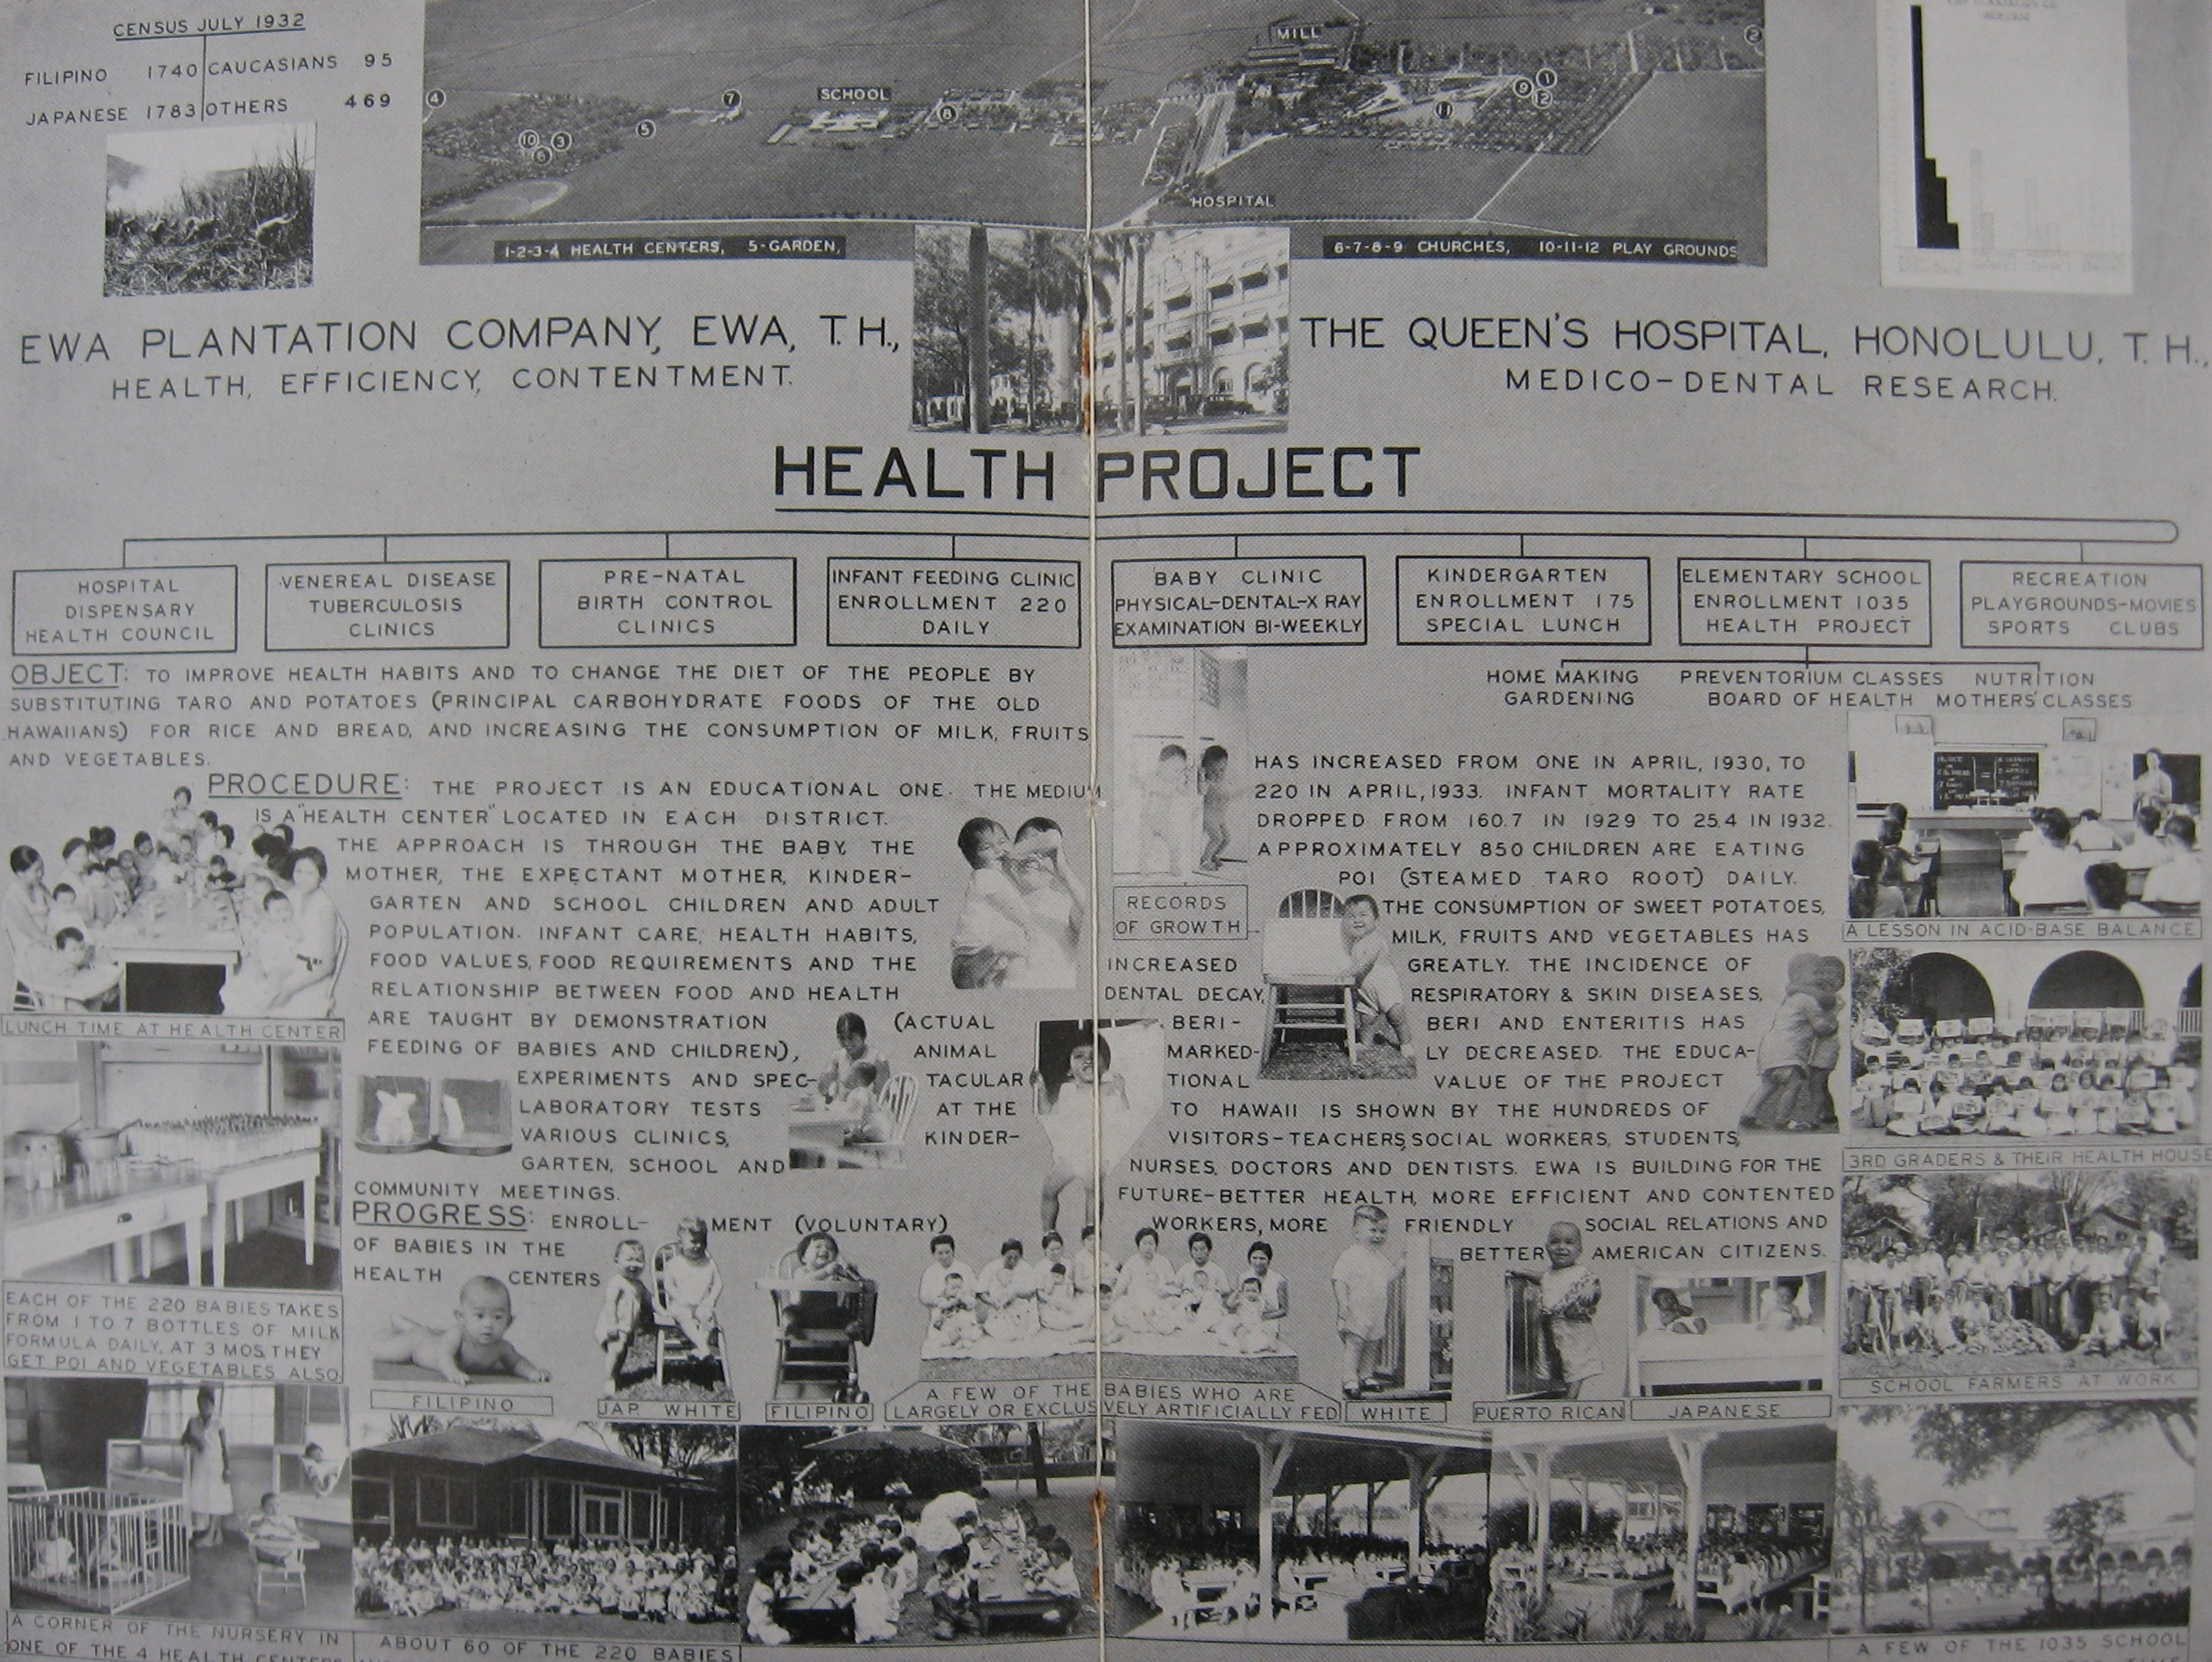 health project chart in Hawaii